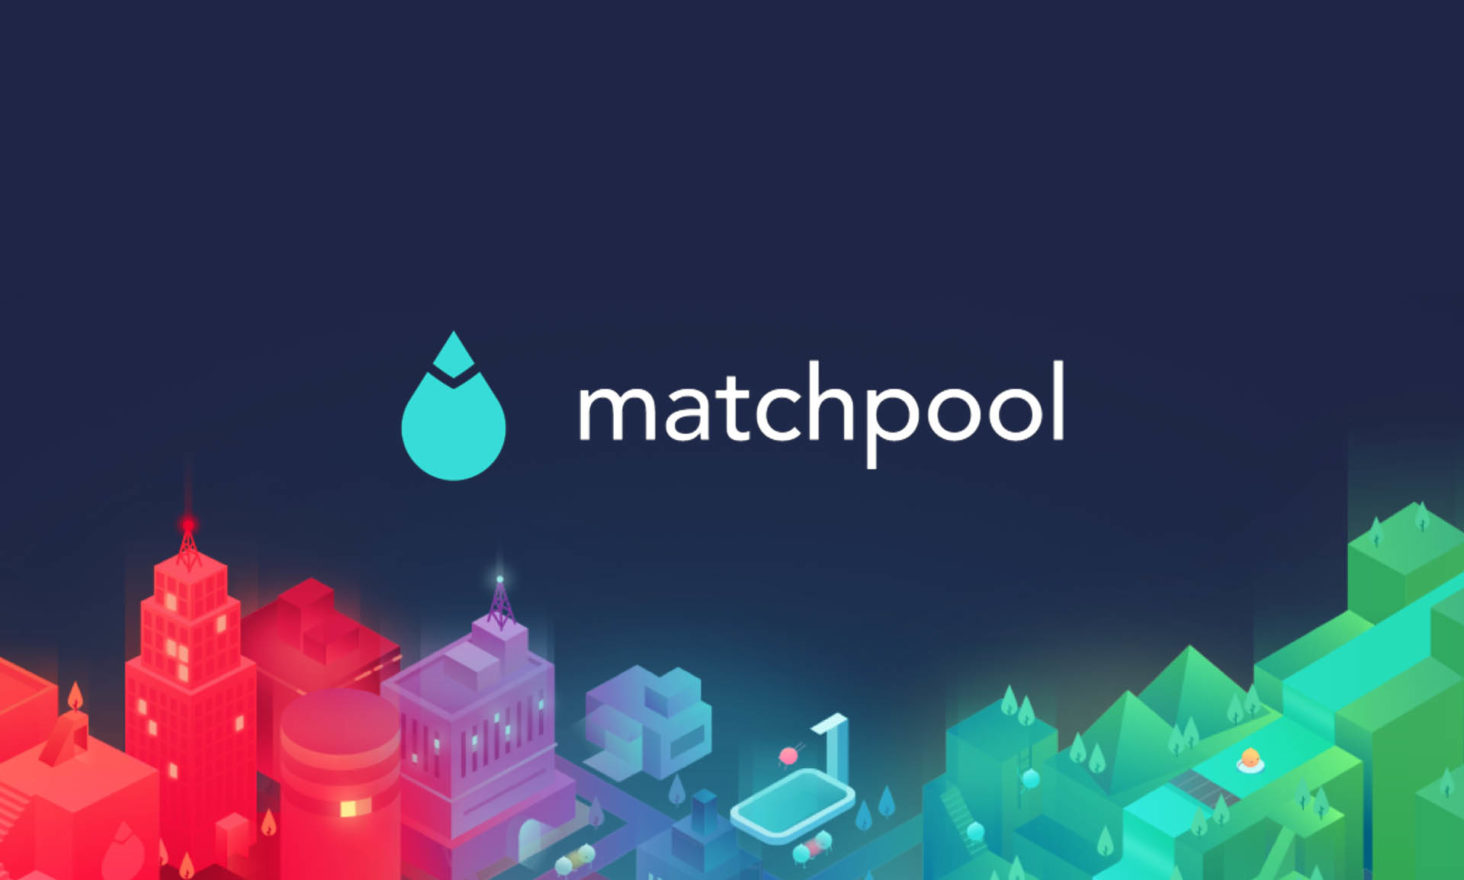 Matchpool Launches Alpha Release of Its Blockchain-based Matchmaking Platform